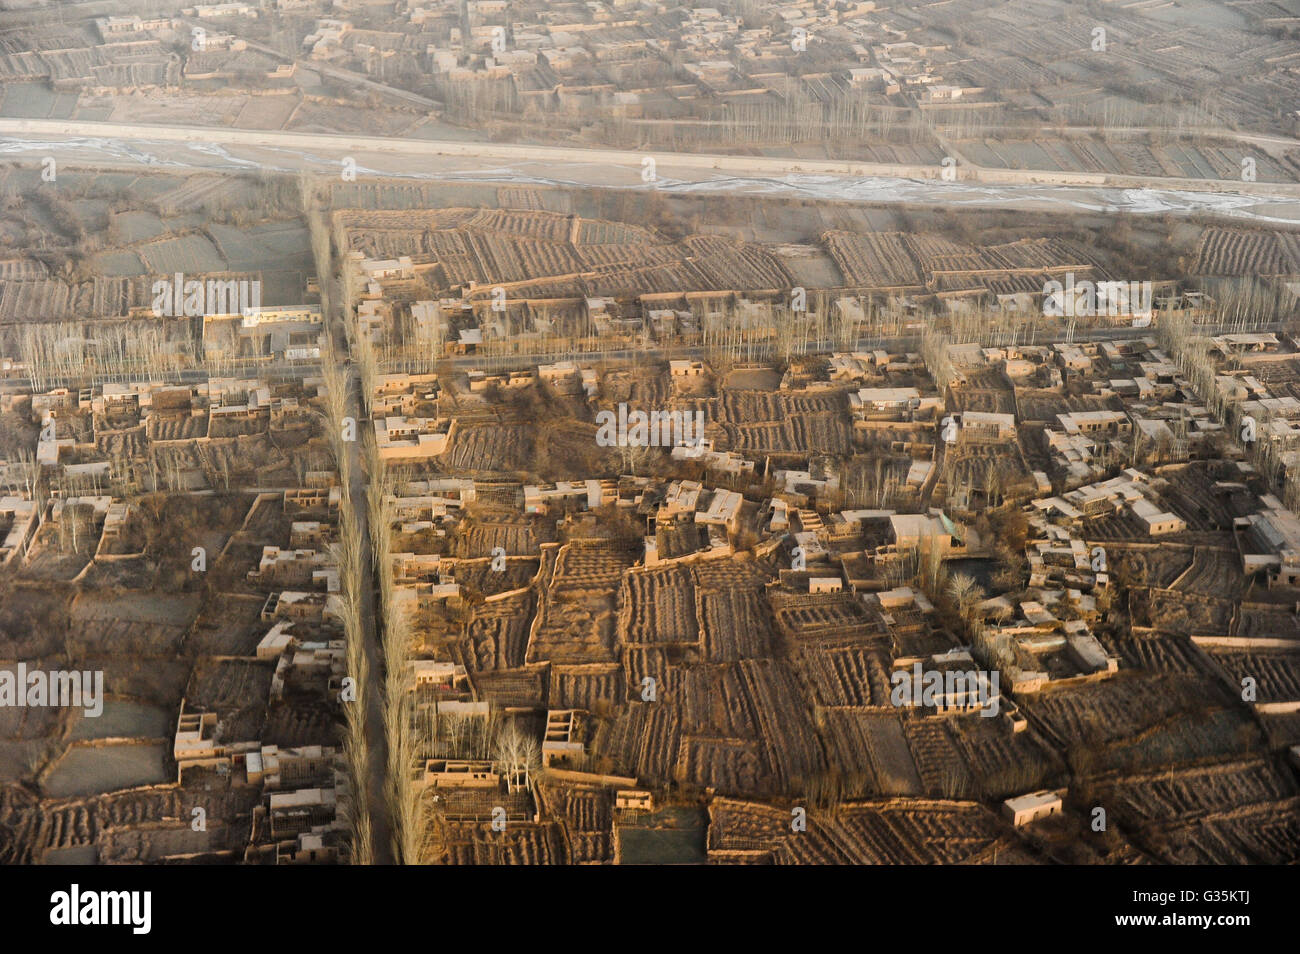 CHINA province Xinjiang, aerial view of city Kashgar and river Kashgar, where uyghur people are living, poplar tree - Stock Image